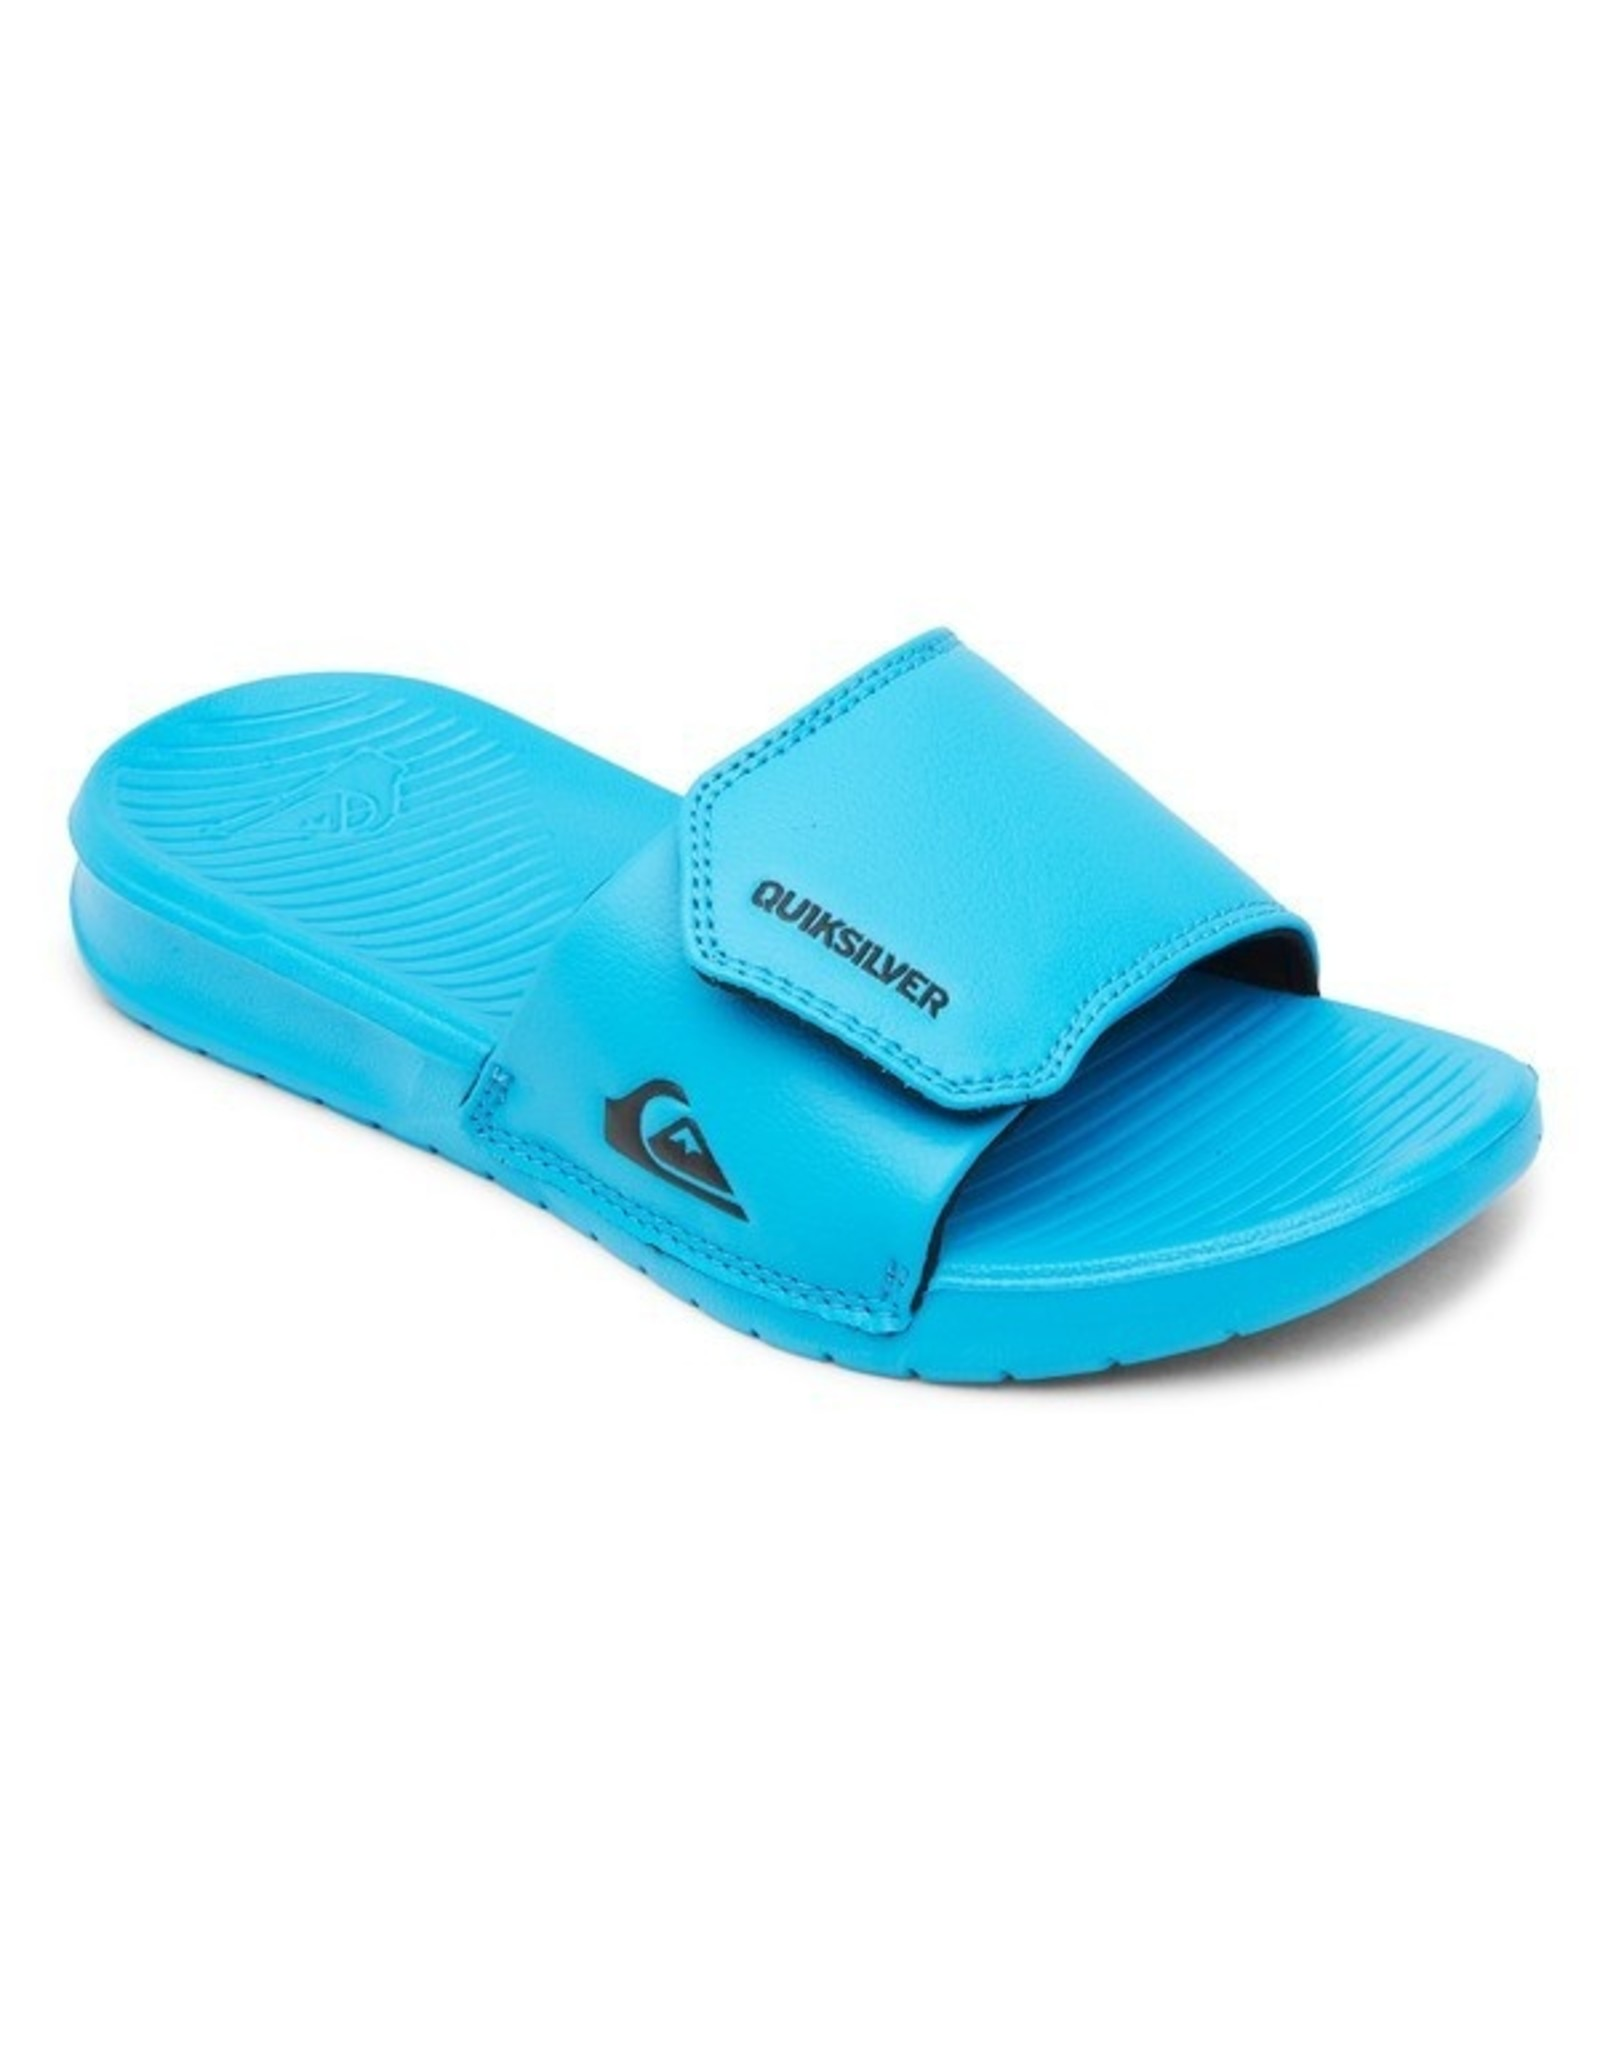 Quiksilver  SP21 Bright Coast Slides - Blue